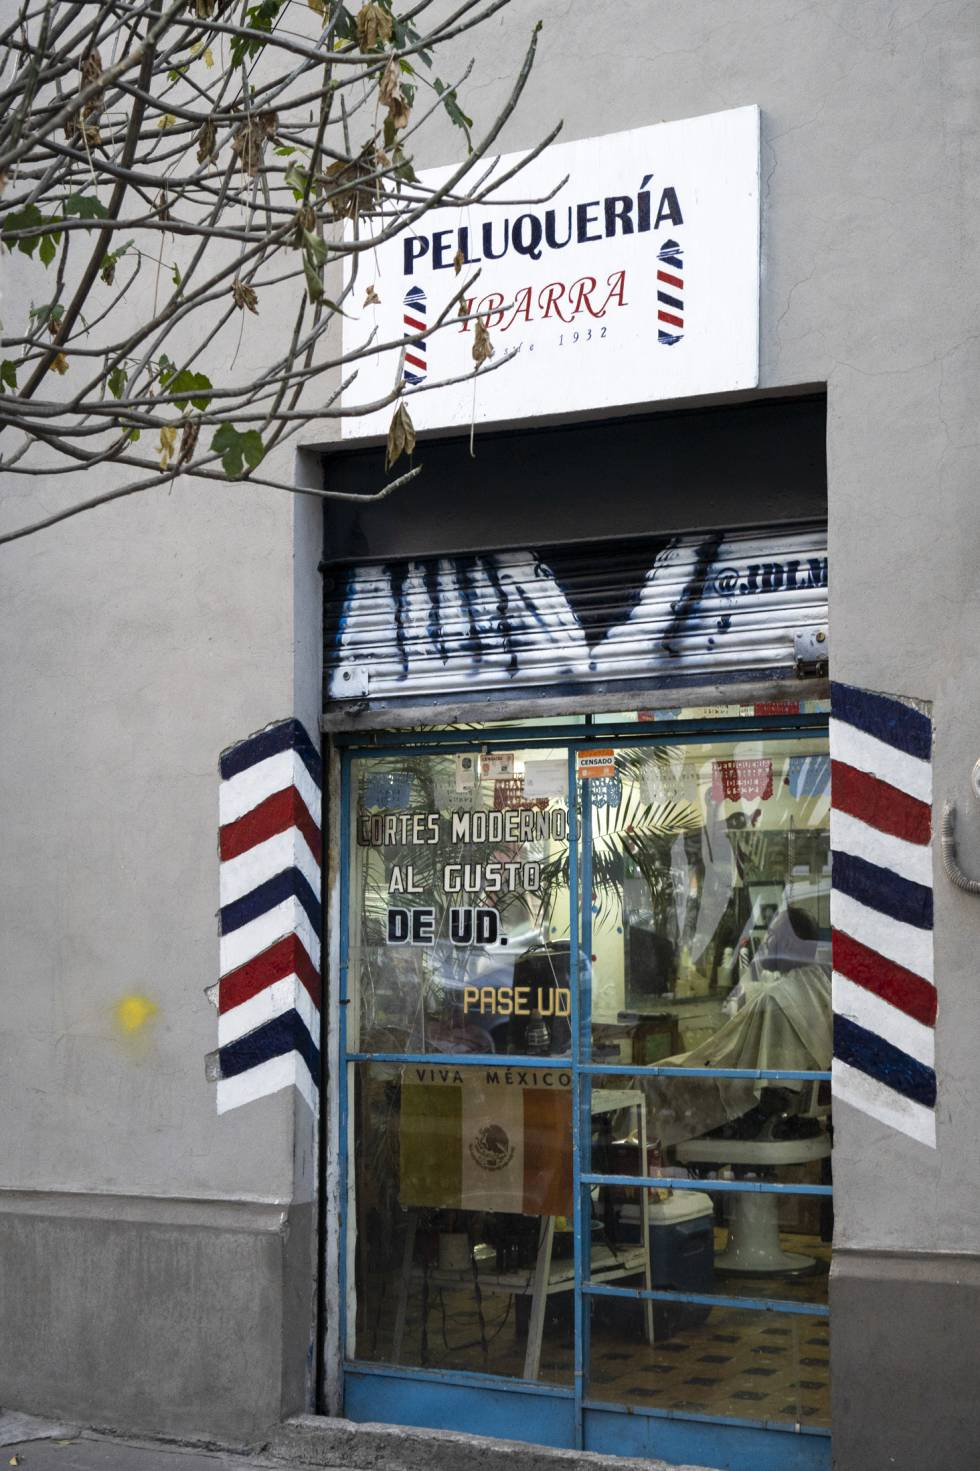 The entrance of the hairdresser in Mexico City.